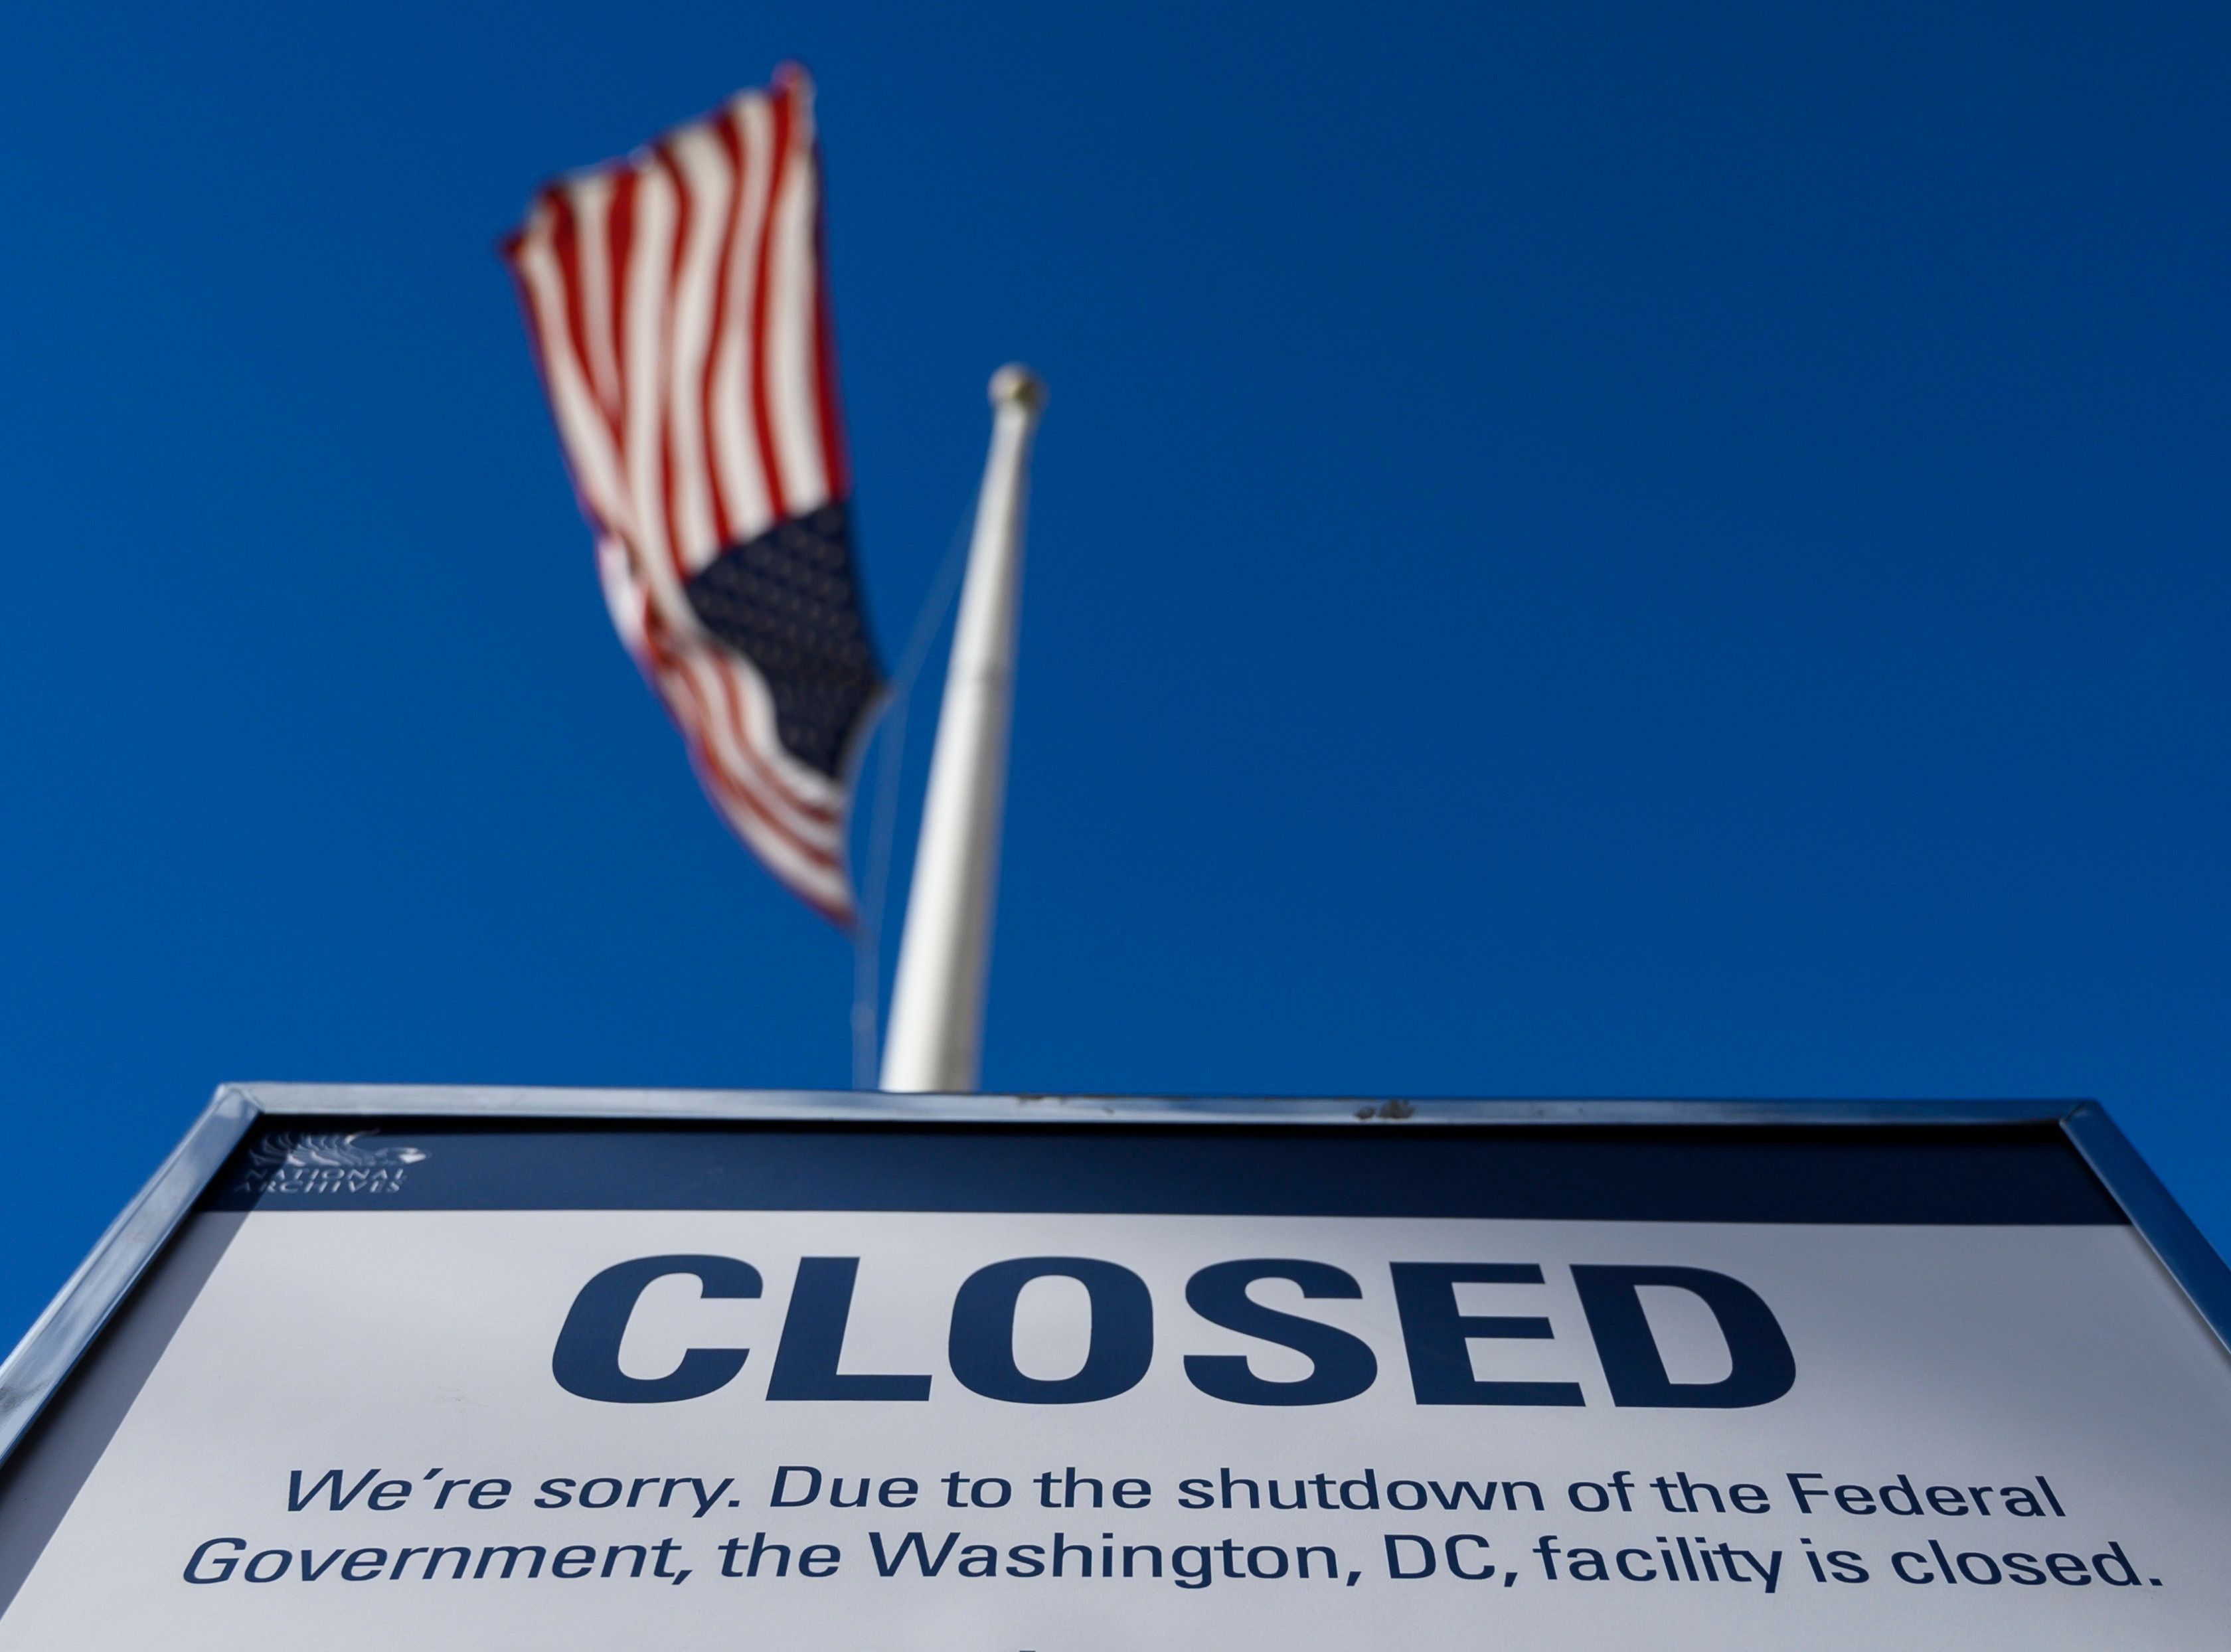 Blank Payslips For US Federal Workers As Shutdown Drags